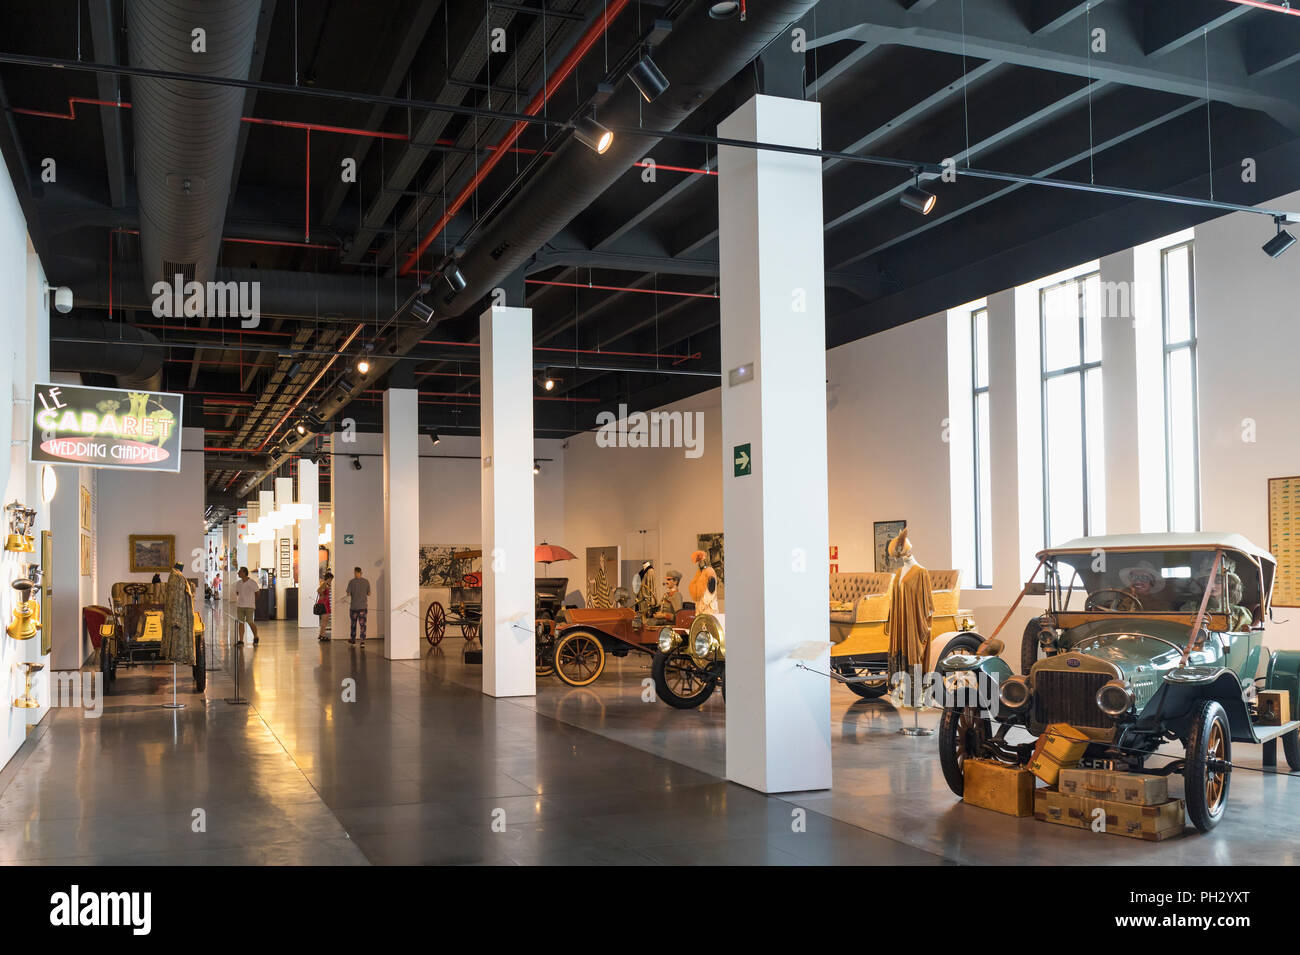 Museo Automovilistico y de la Moda, Malaga, Malaga Province, Spain.  Automobile and Fashion Museum.  Part of the display. - Stock Image